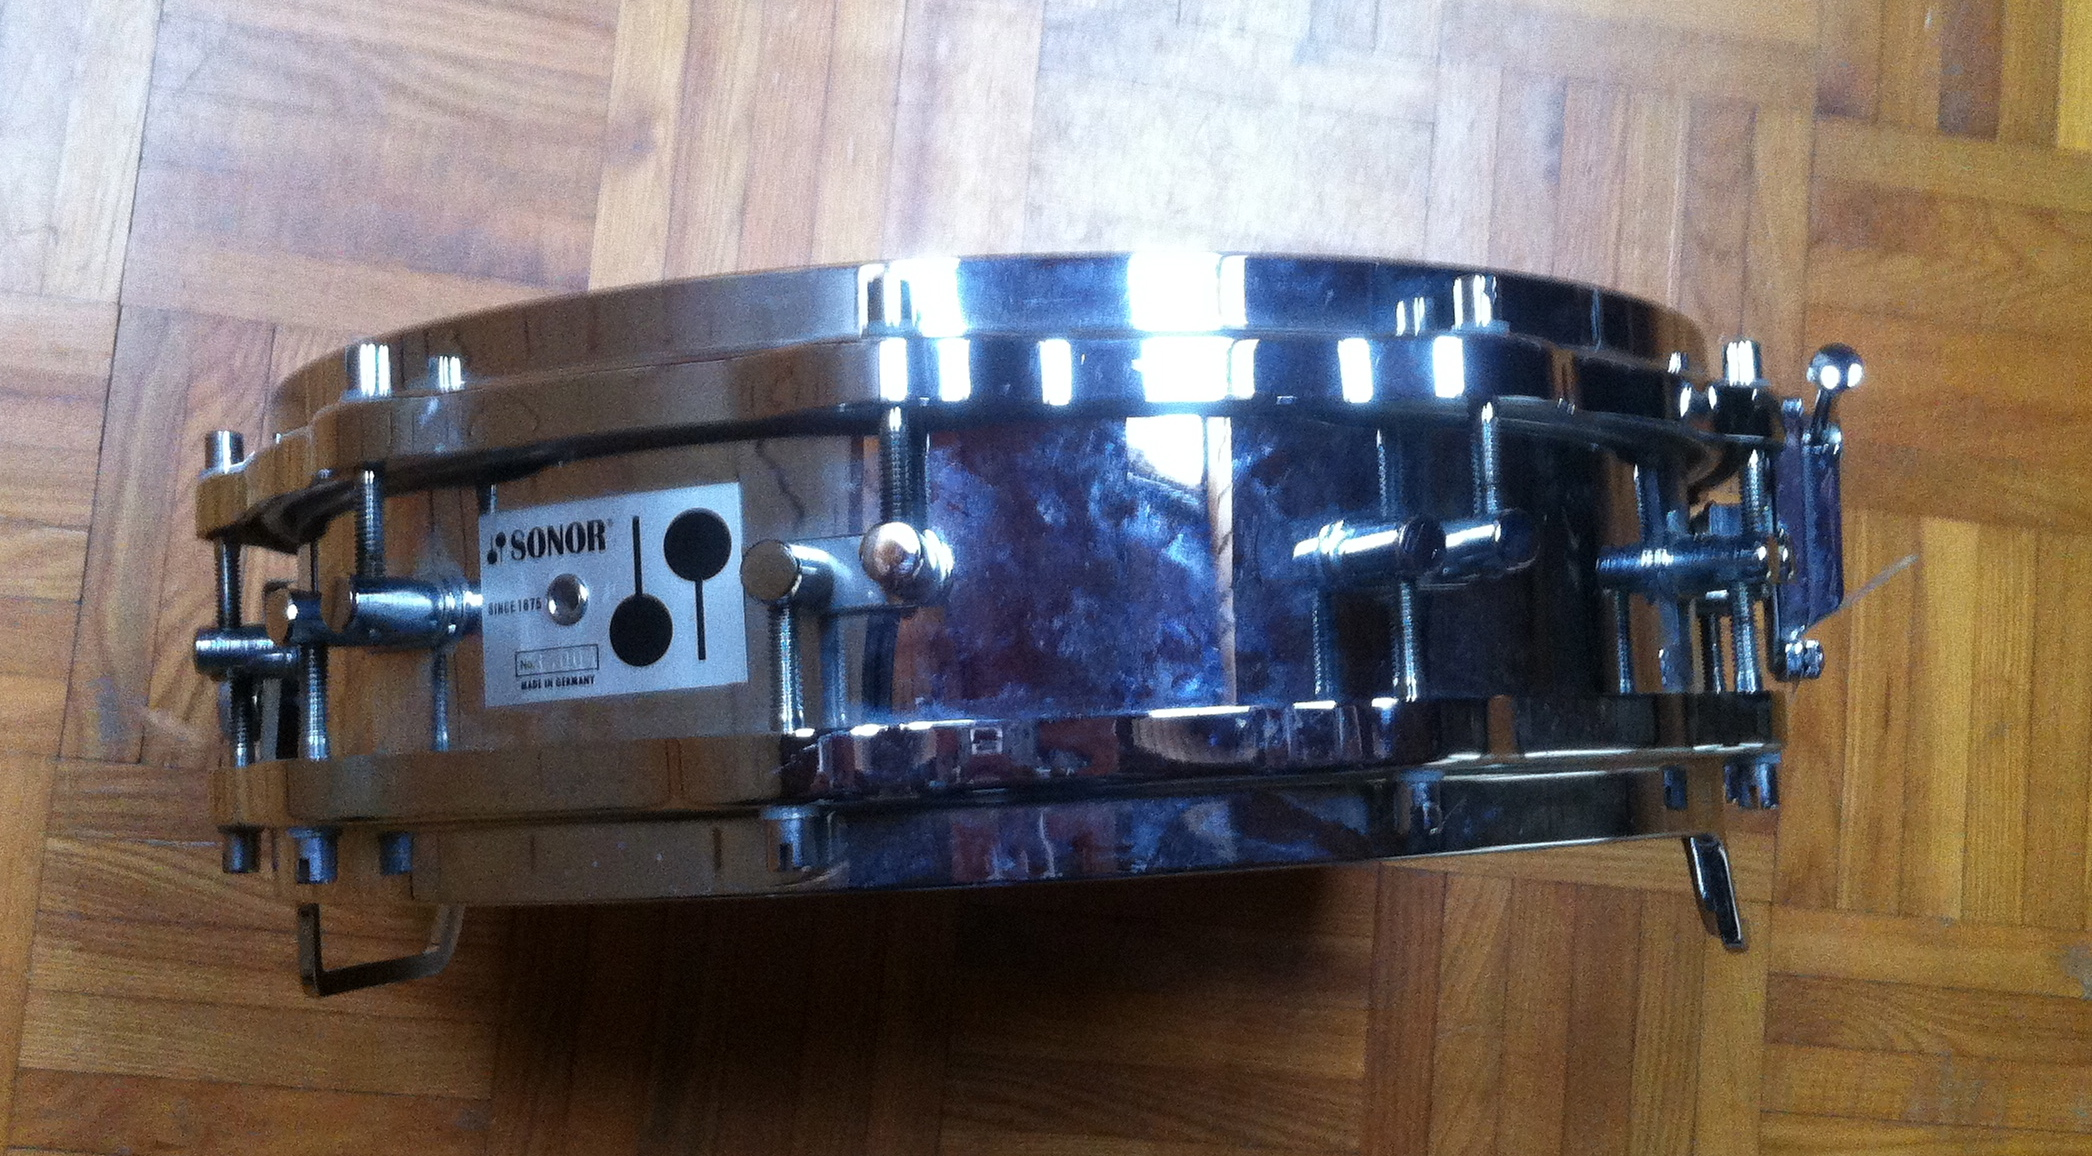 Sonor Phonic D420